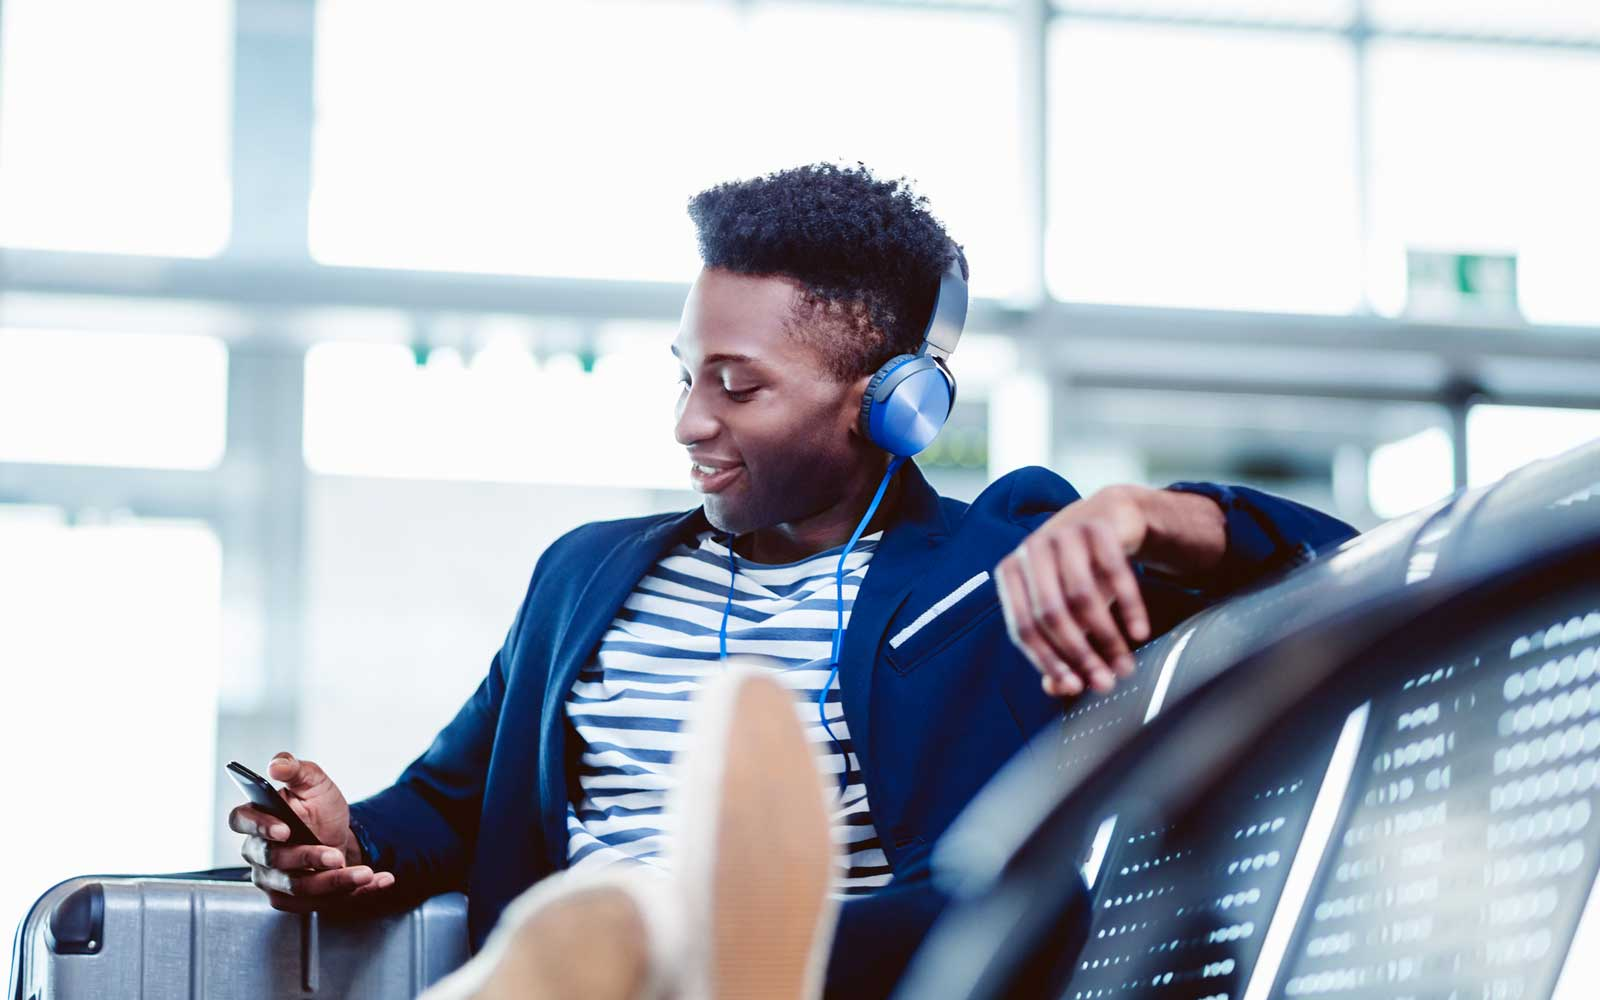 A young man uses his phone while waiting at an airport